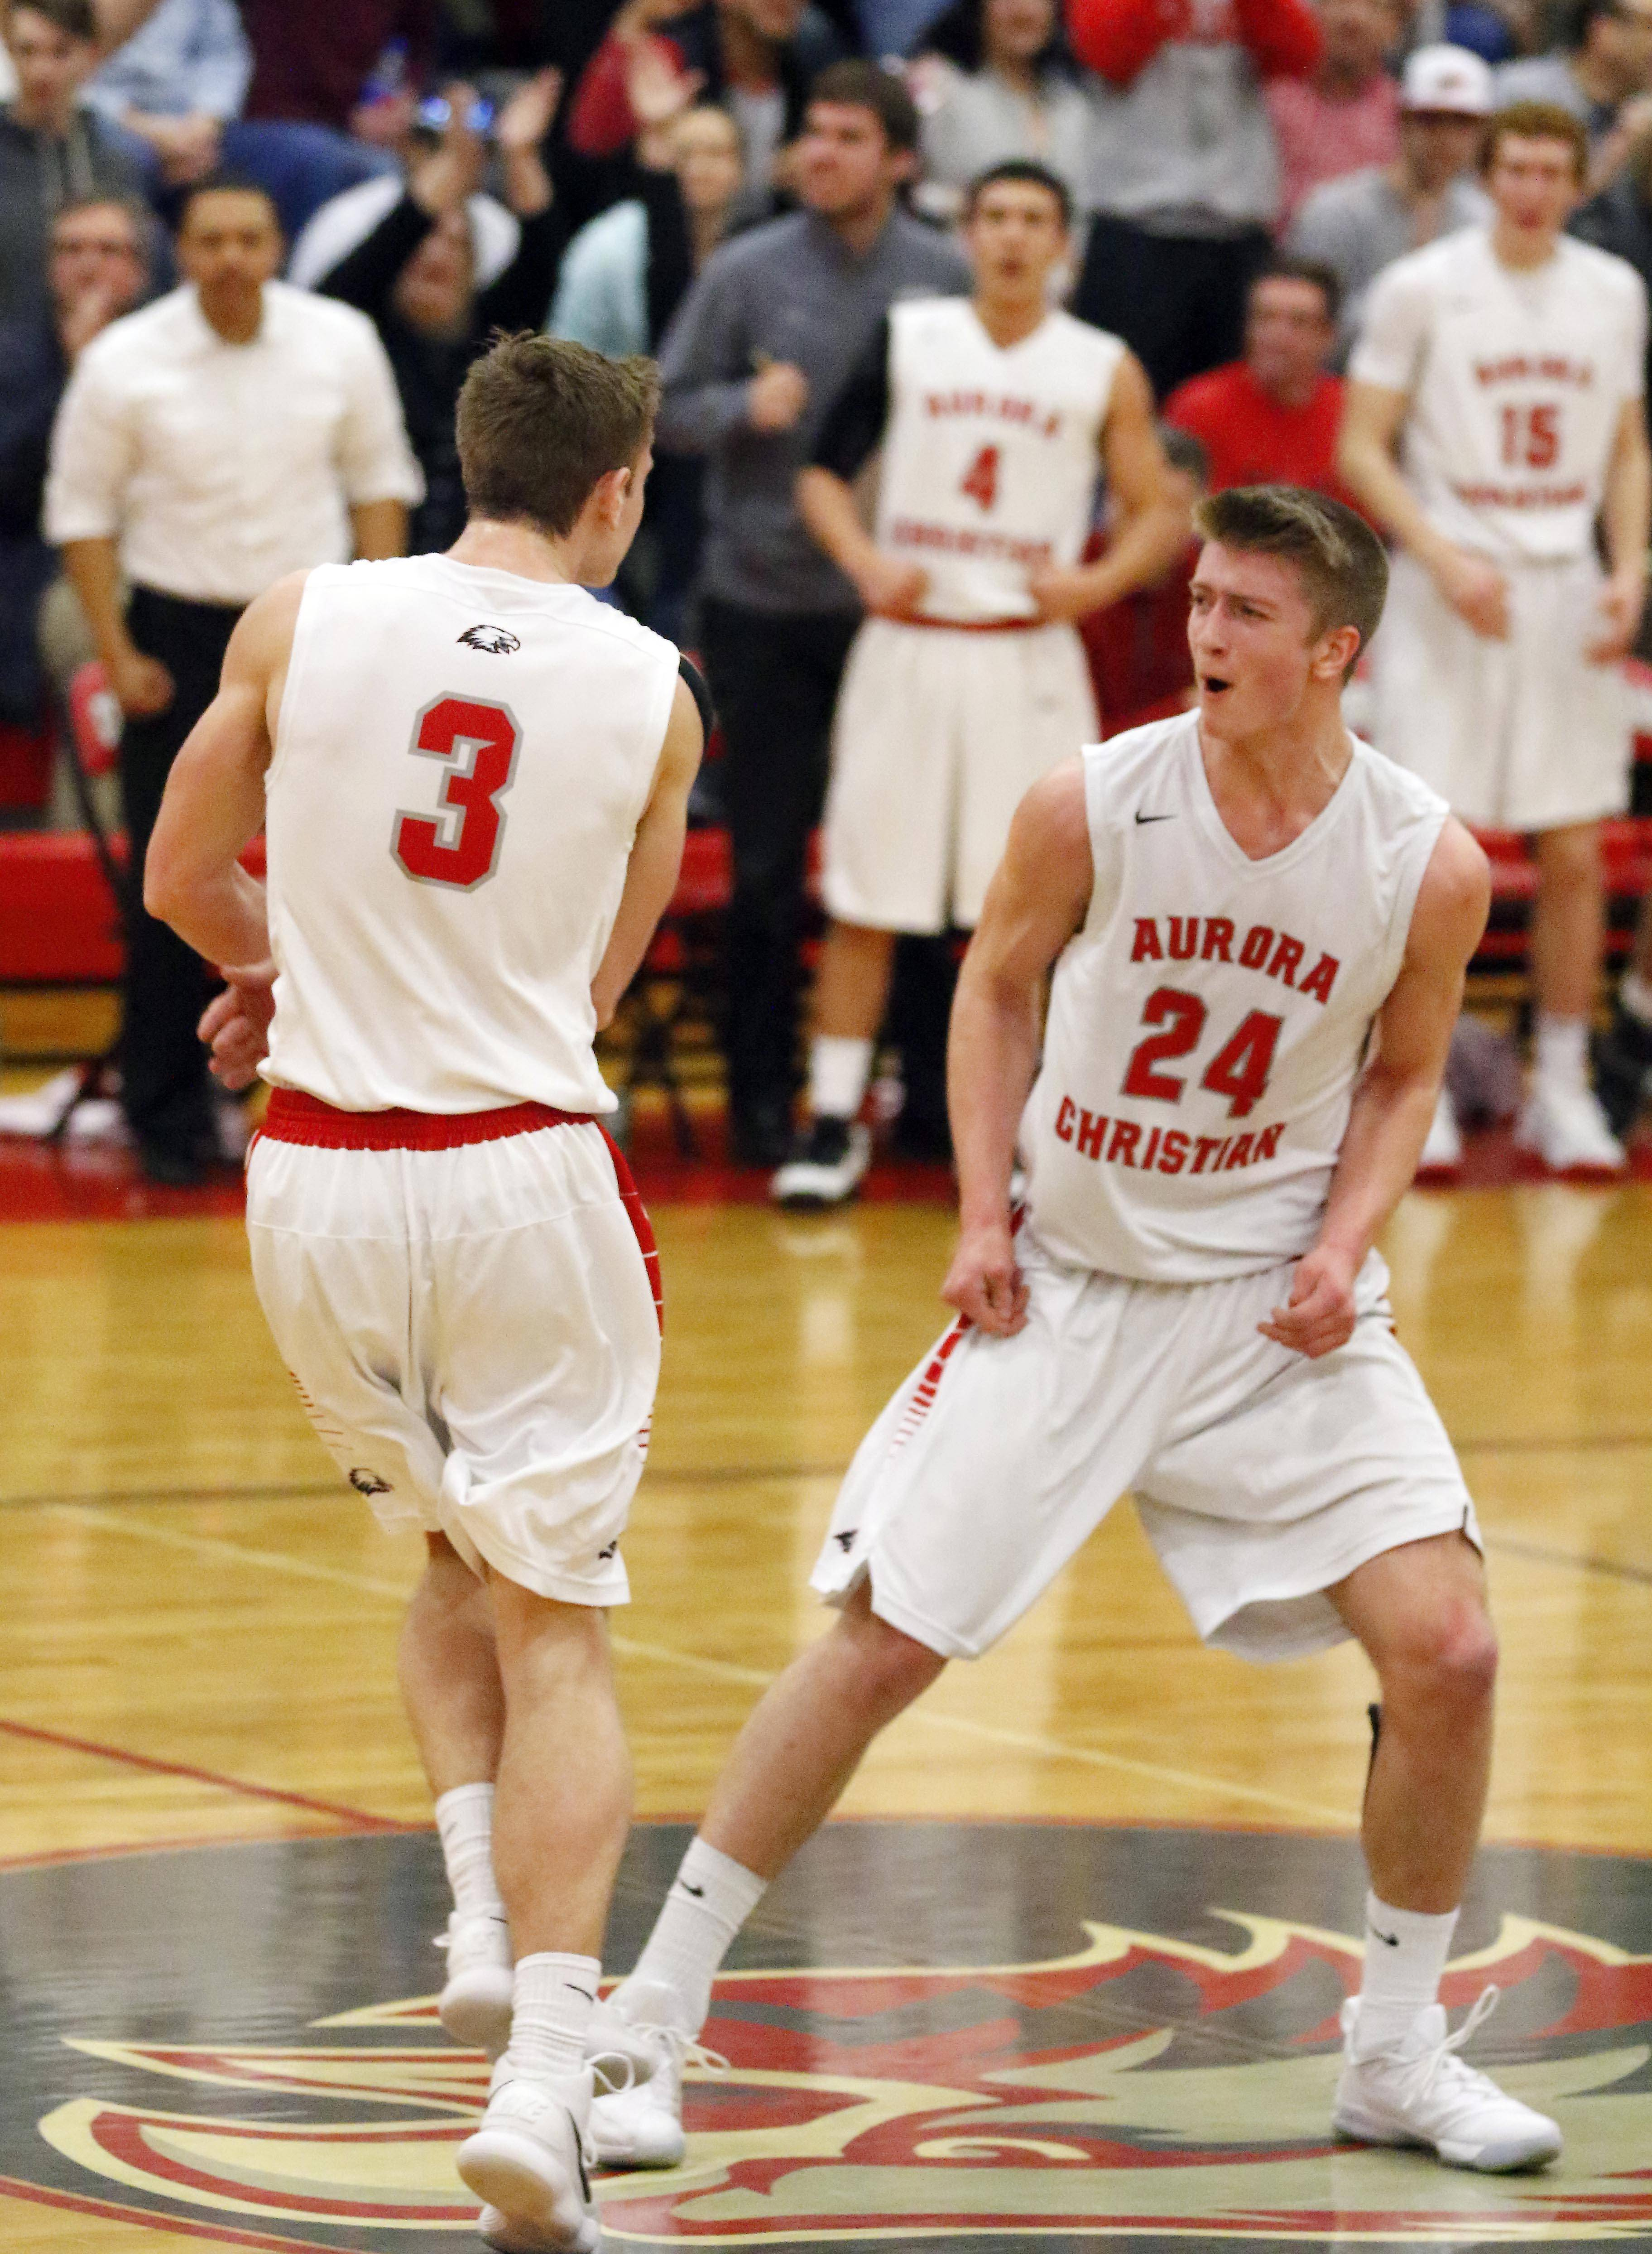 Aurora Christian's Jake Wolfe (3) and Will Wolfe (24) celebrate a three-point basket.